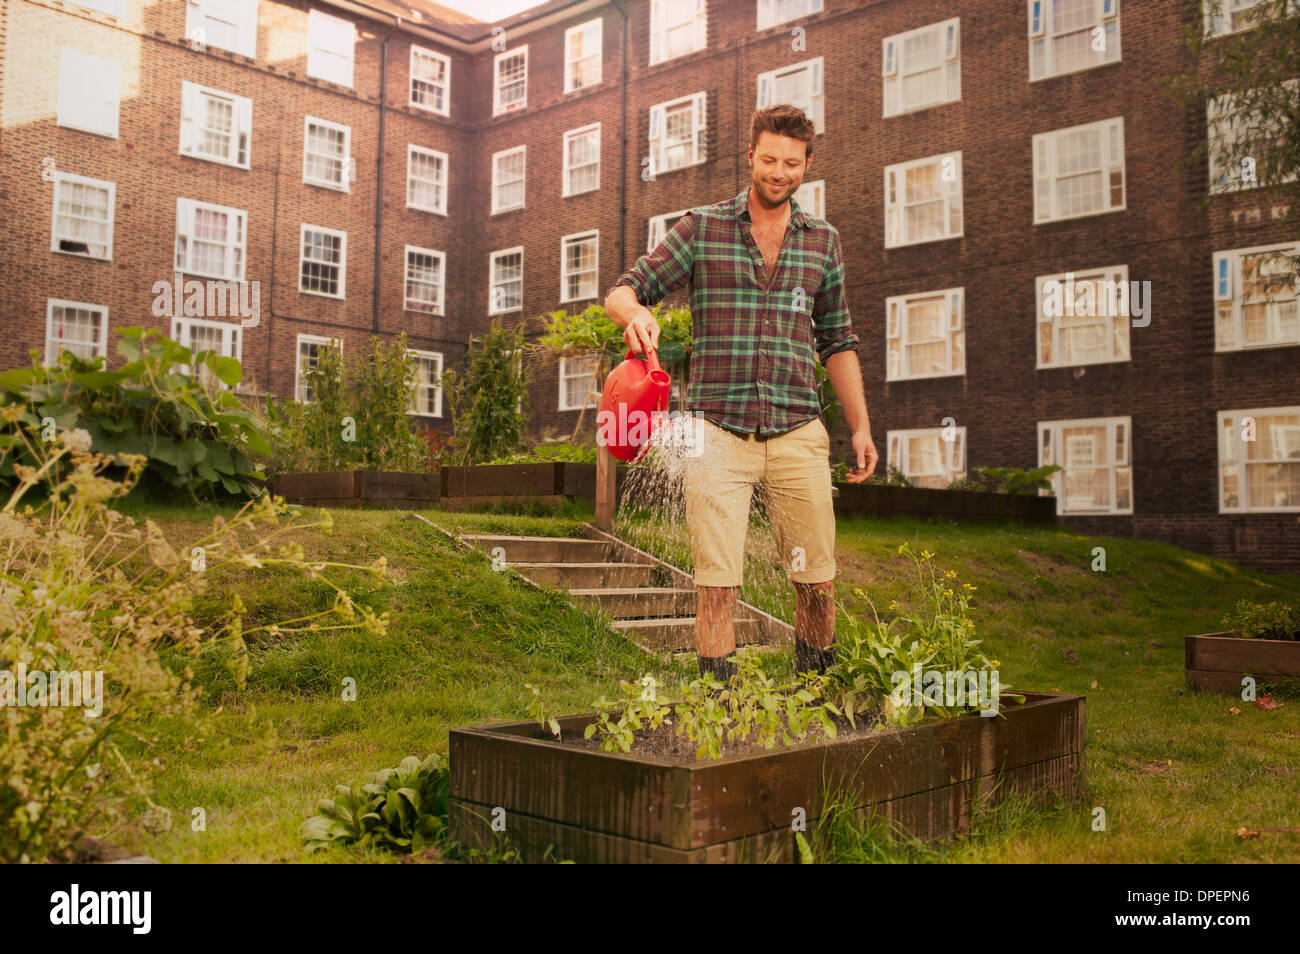 Mid adult man watering raised beds on council estate allotment - Stock Image